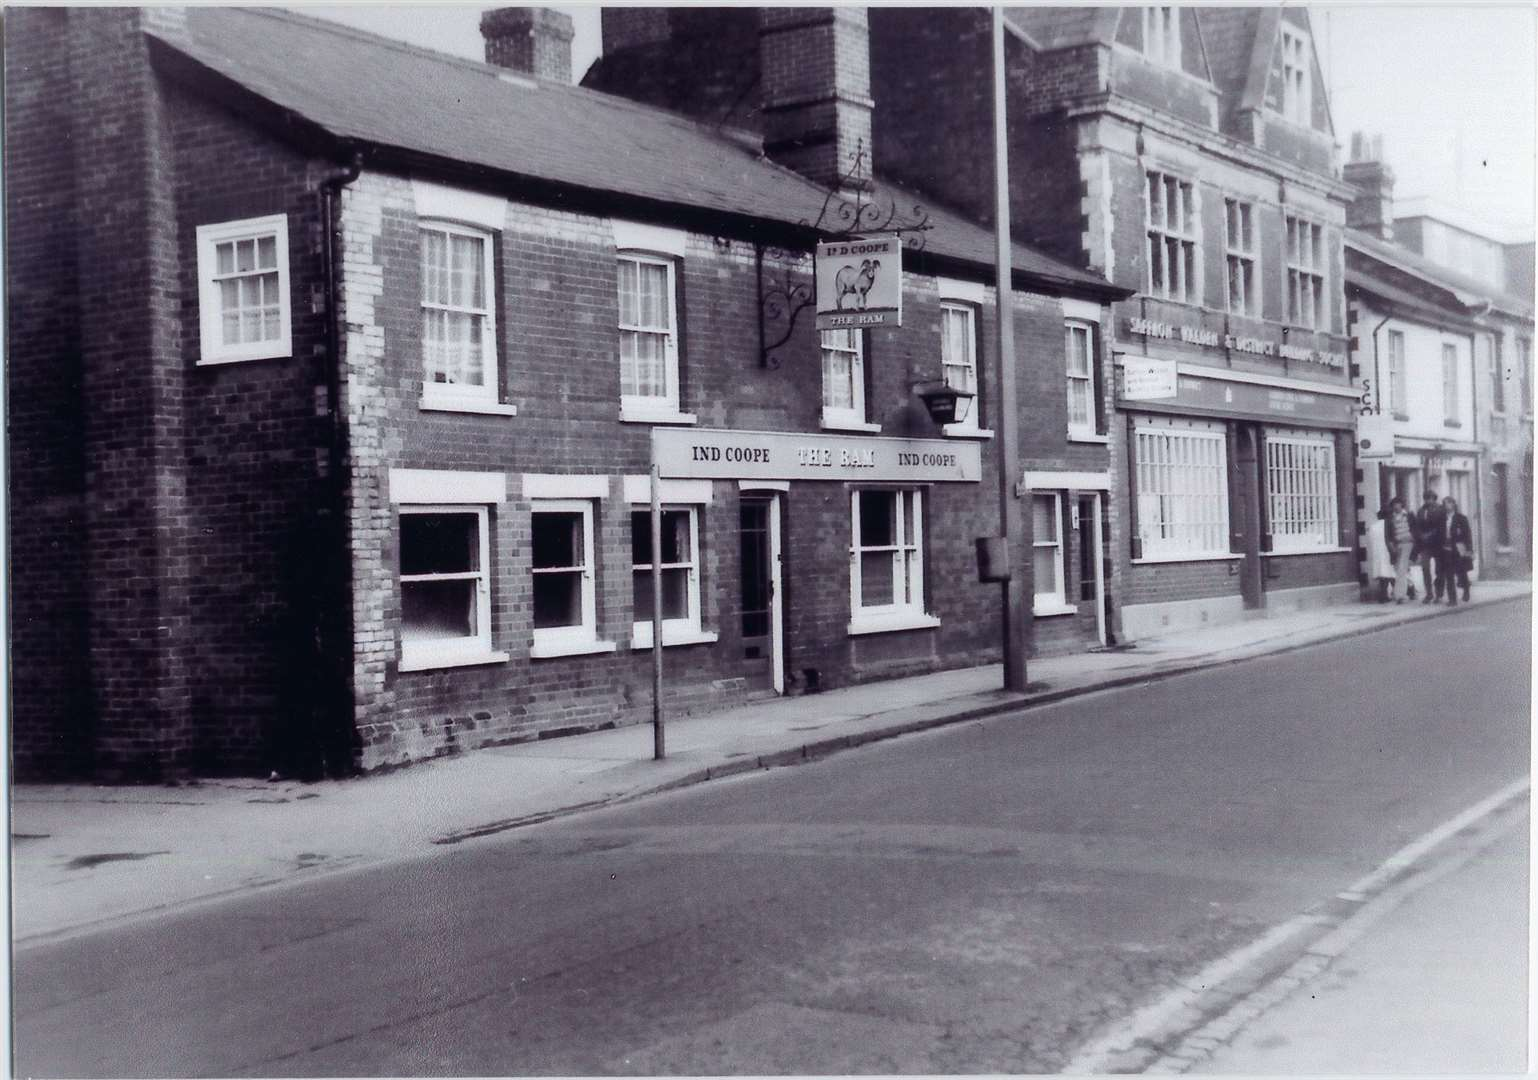 The Ram pub in Haverhill. Picture: Haverhill and District Local History Group